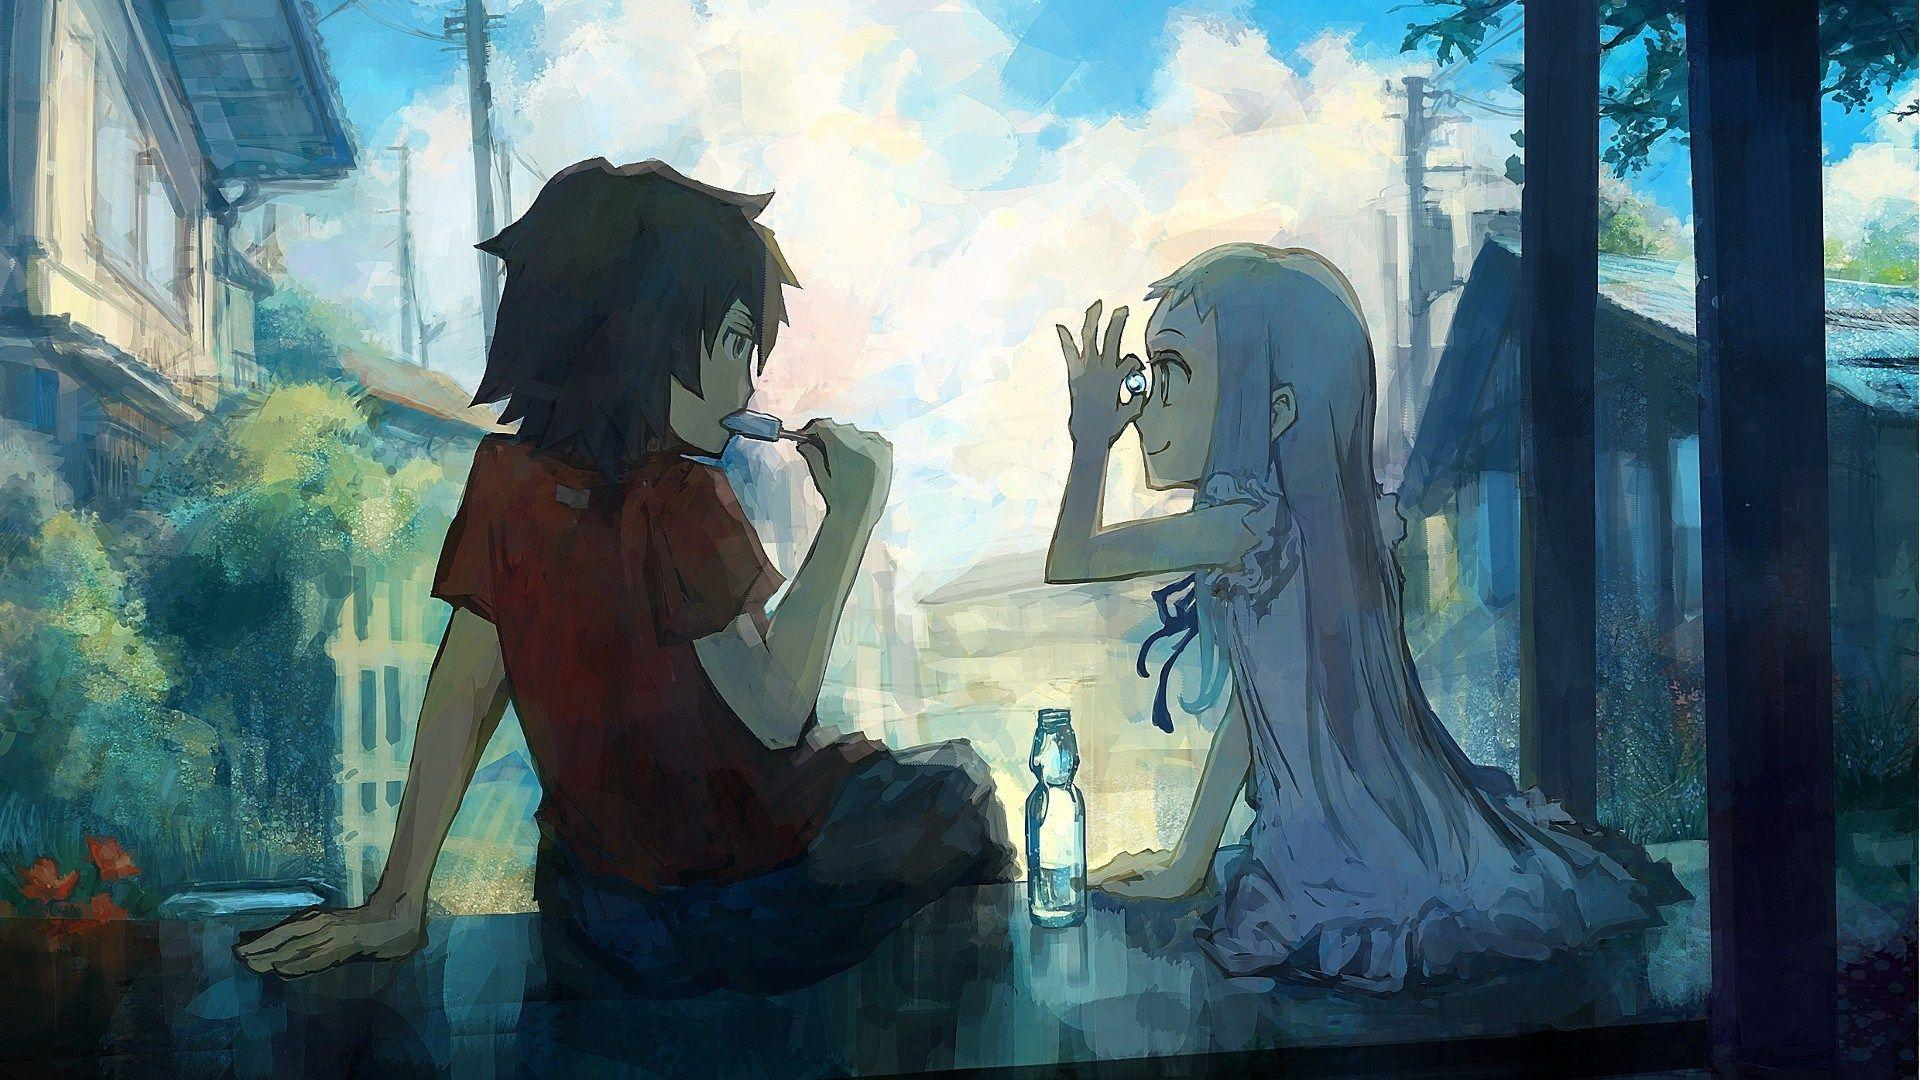 Anohana: The Flower We Saw That Day | KnowSenpai